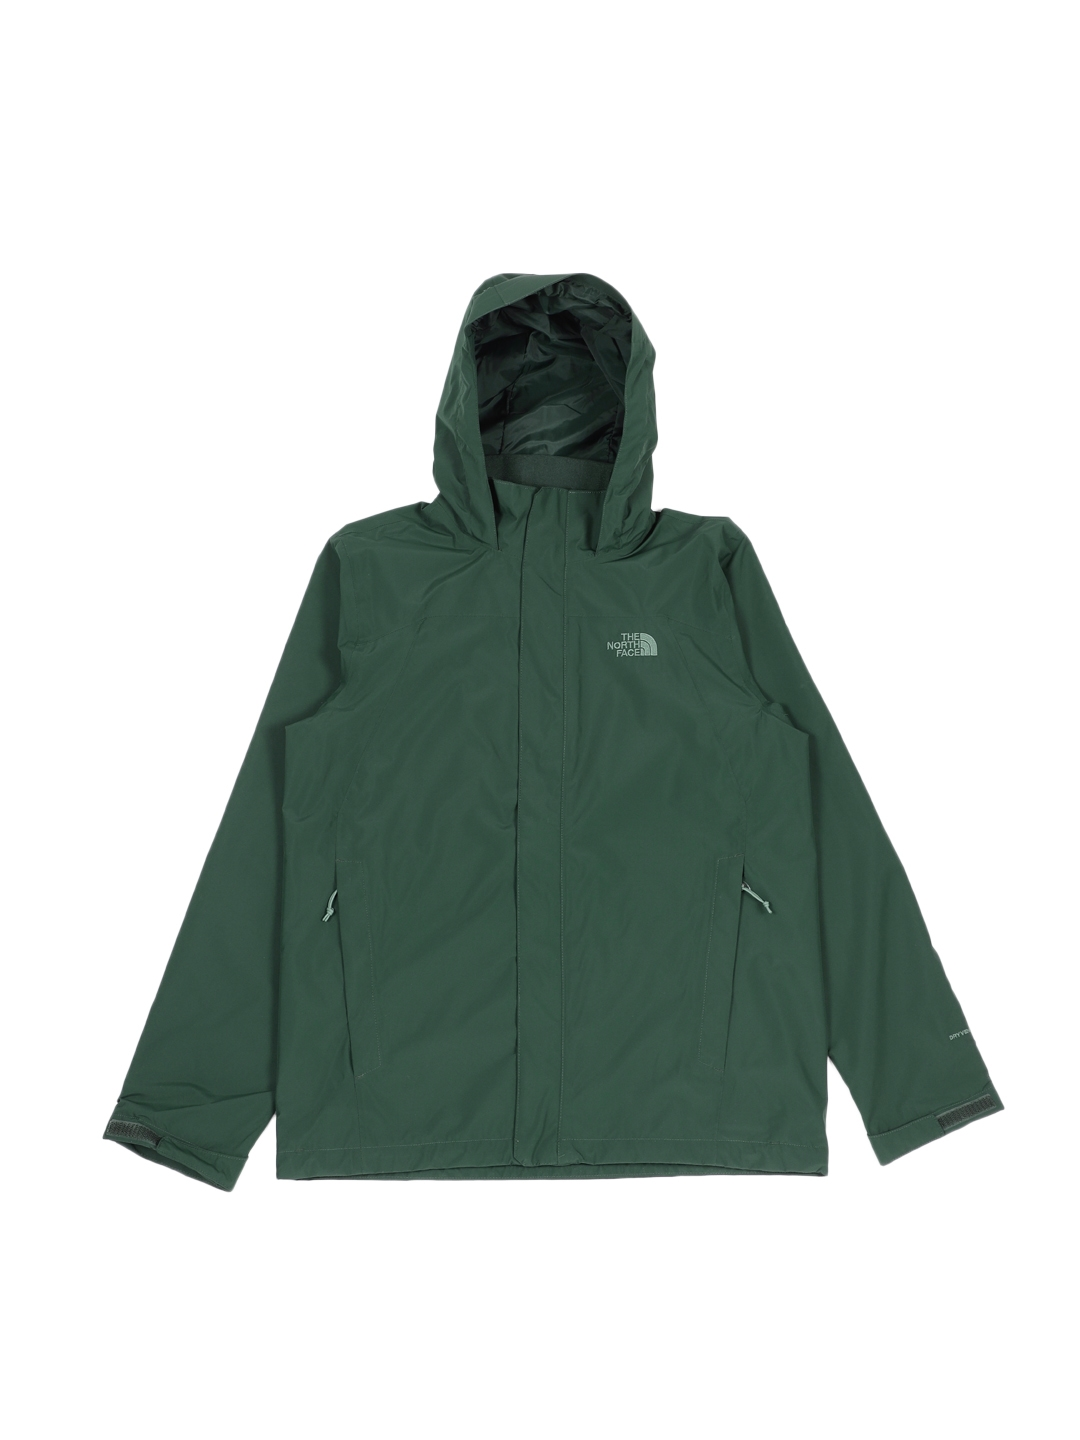 70cd087c2 The North Face Men Green Solid Water Resistant M Sangro Plus Parka Jacket